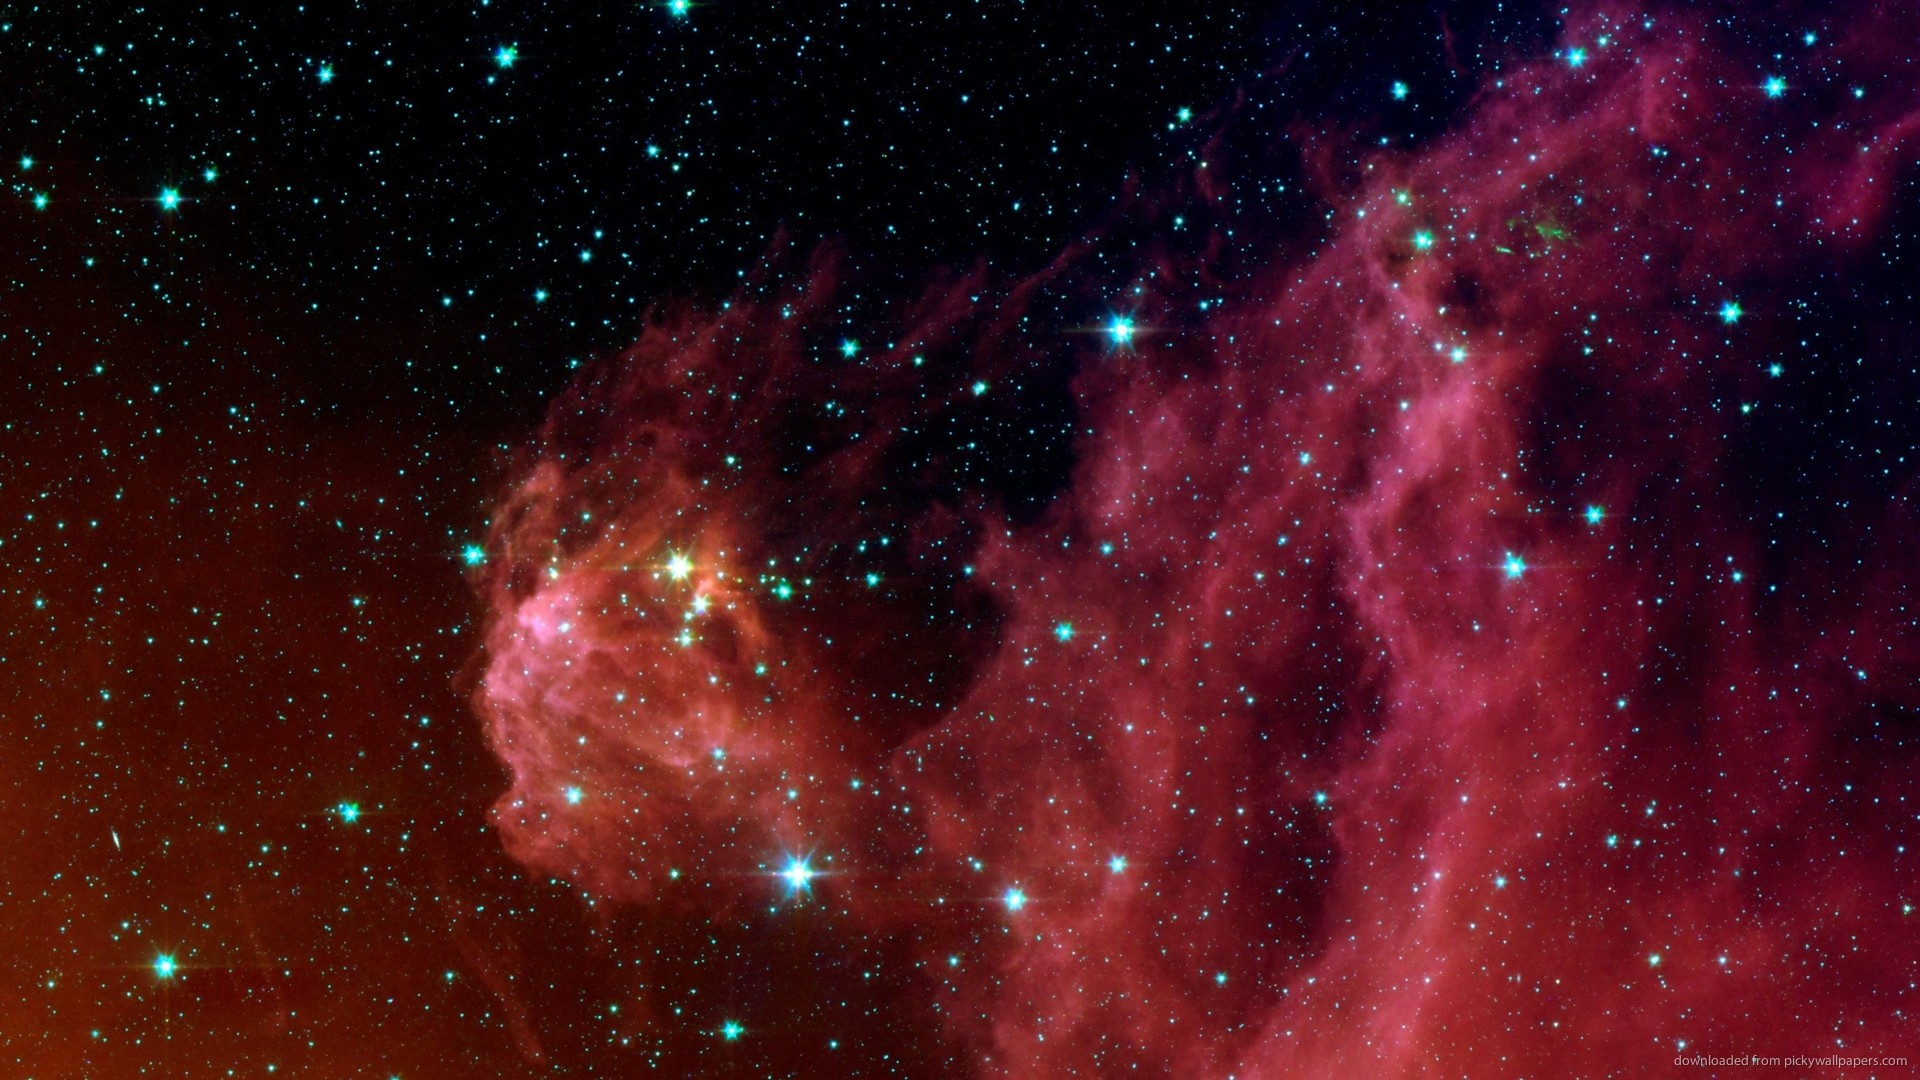 1920x1080 NASA Spitzer Space Telescope's Photo for